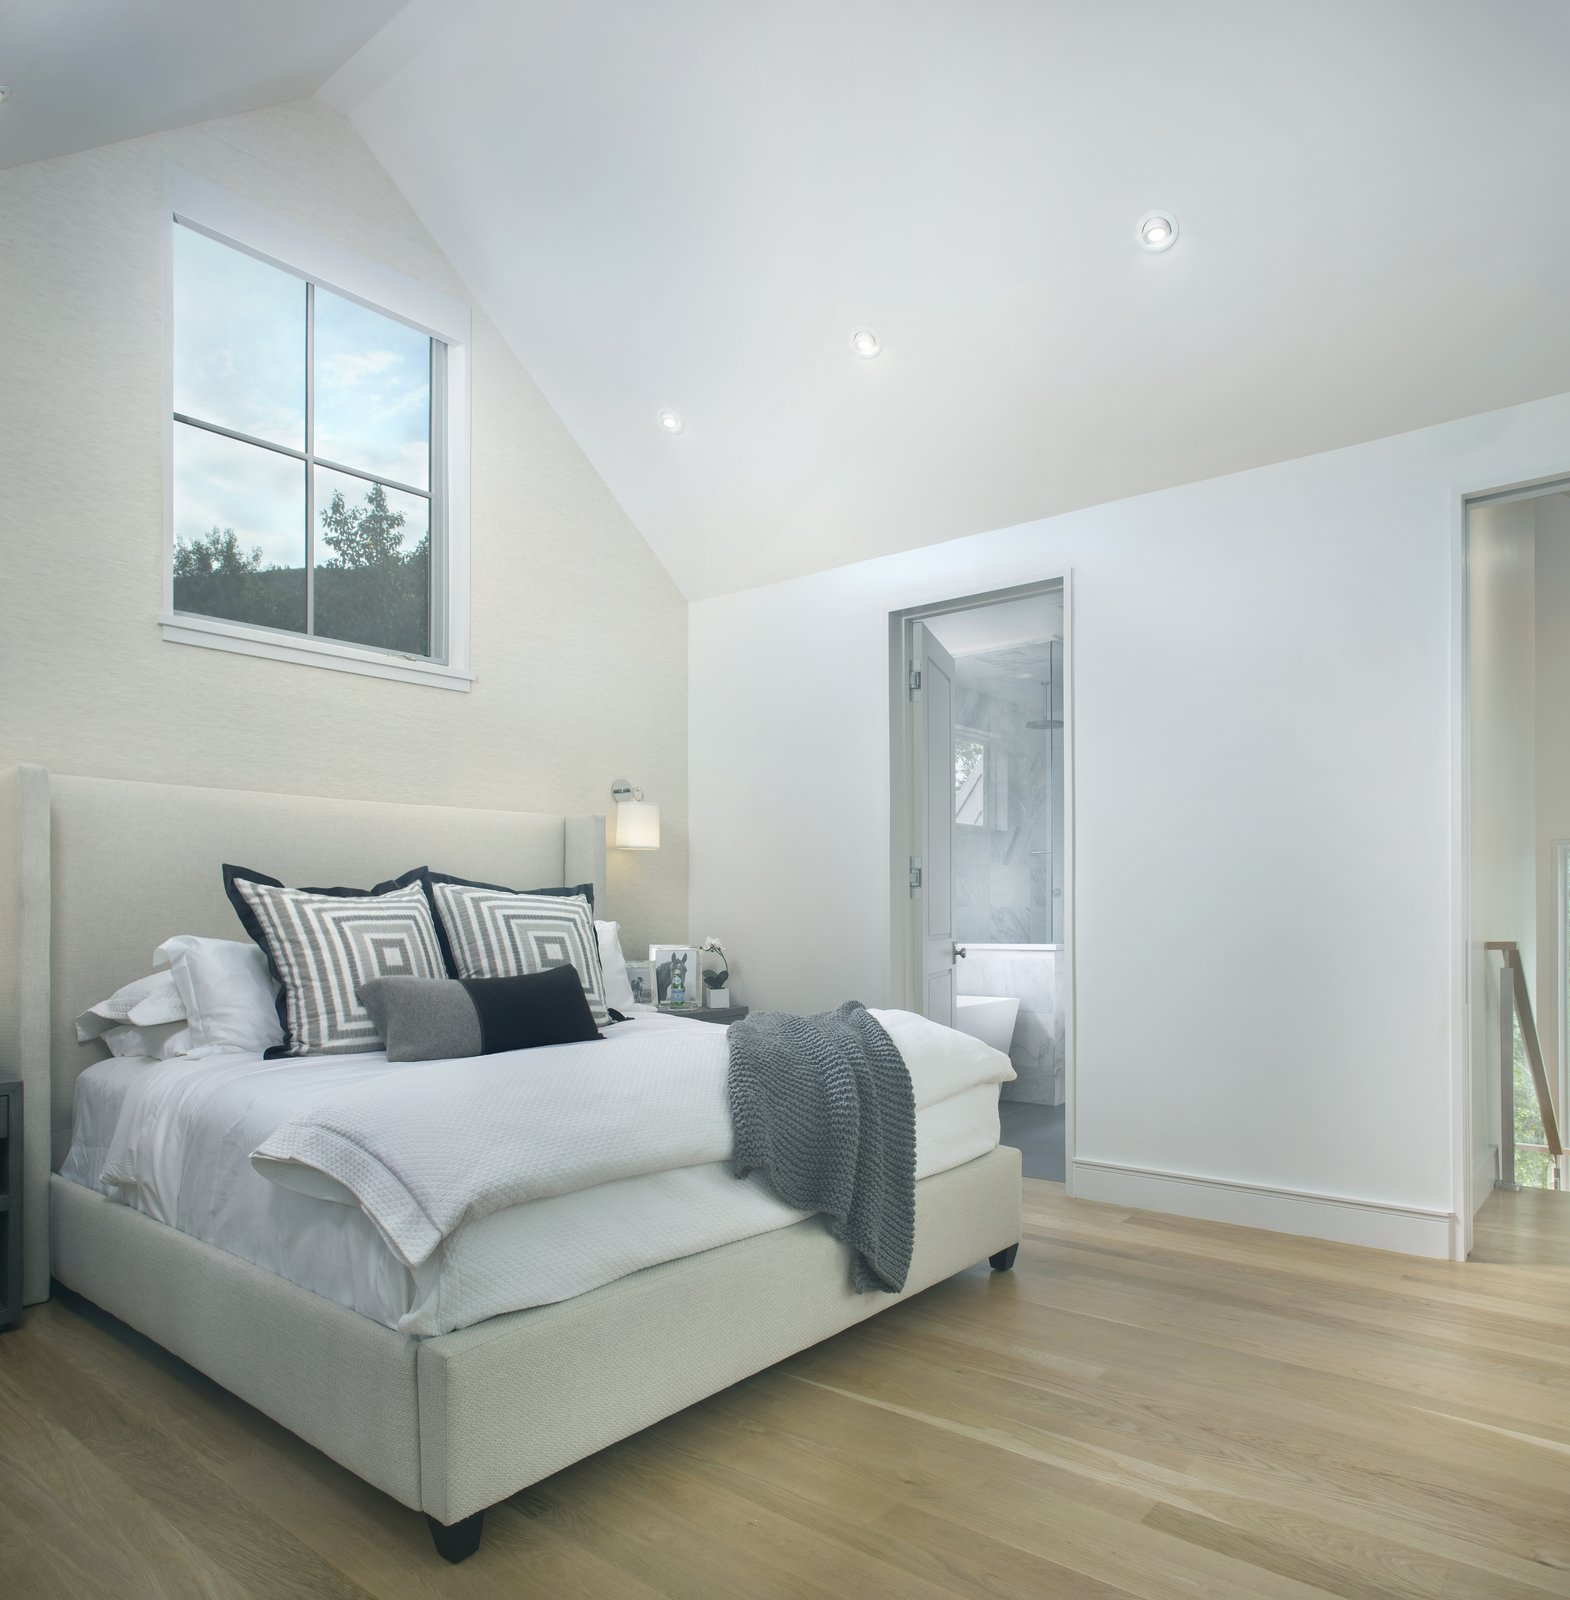 Bedroom Master loft   Smuggler Grove by Forum Phi Architecture | Interiors | Planning